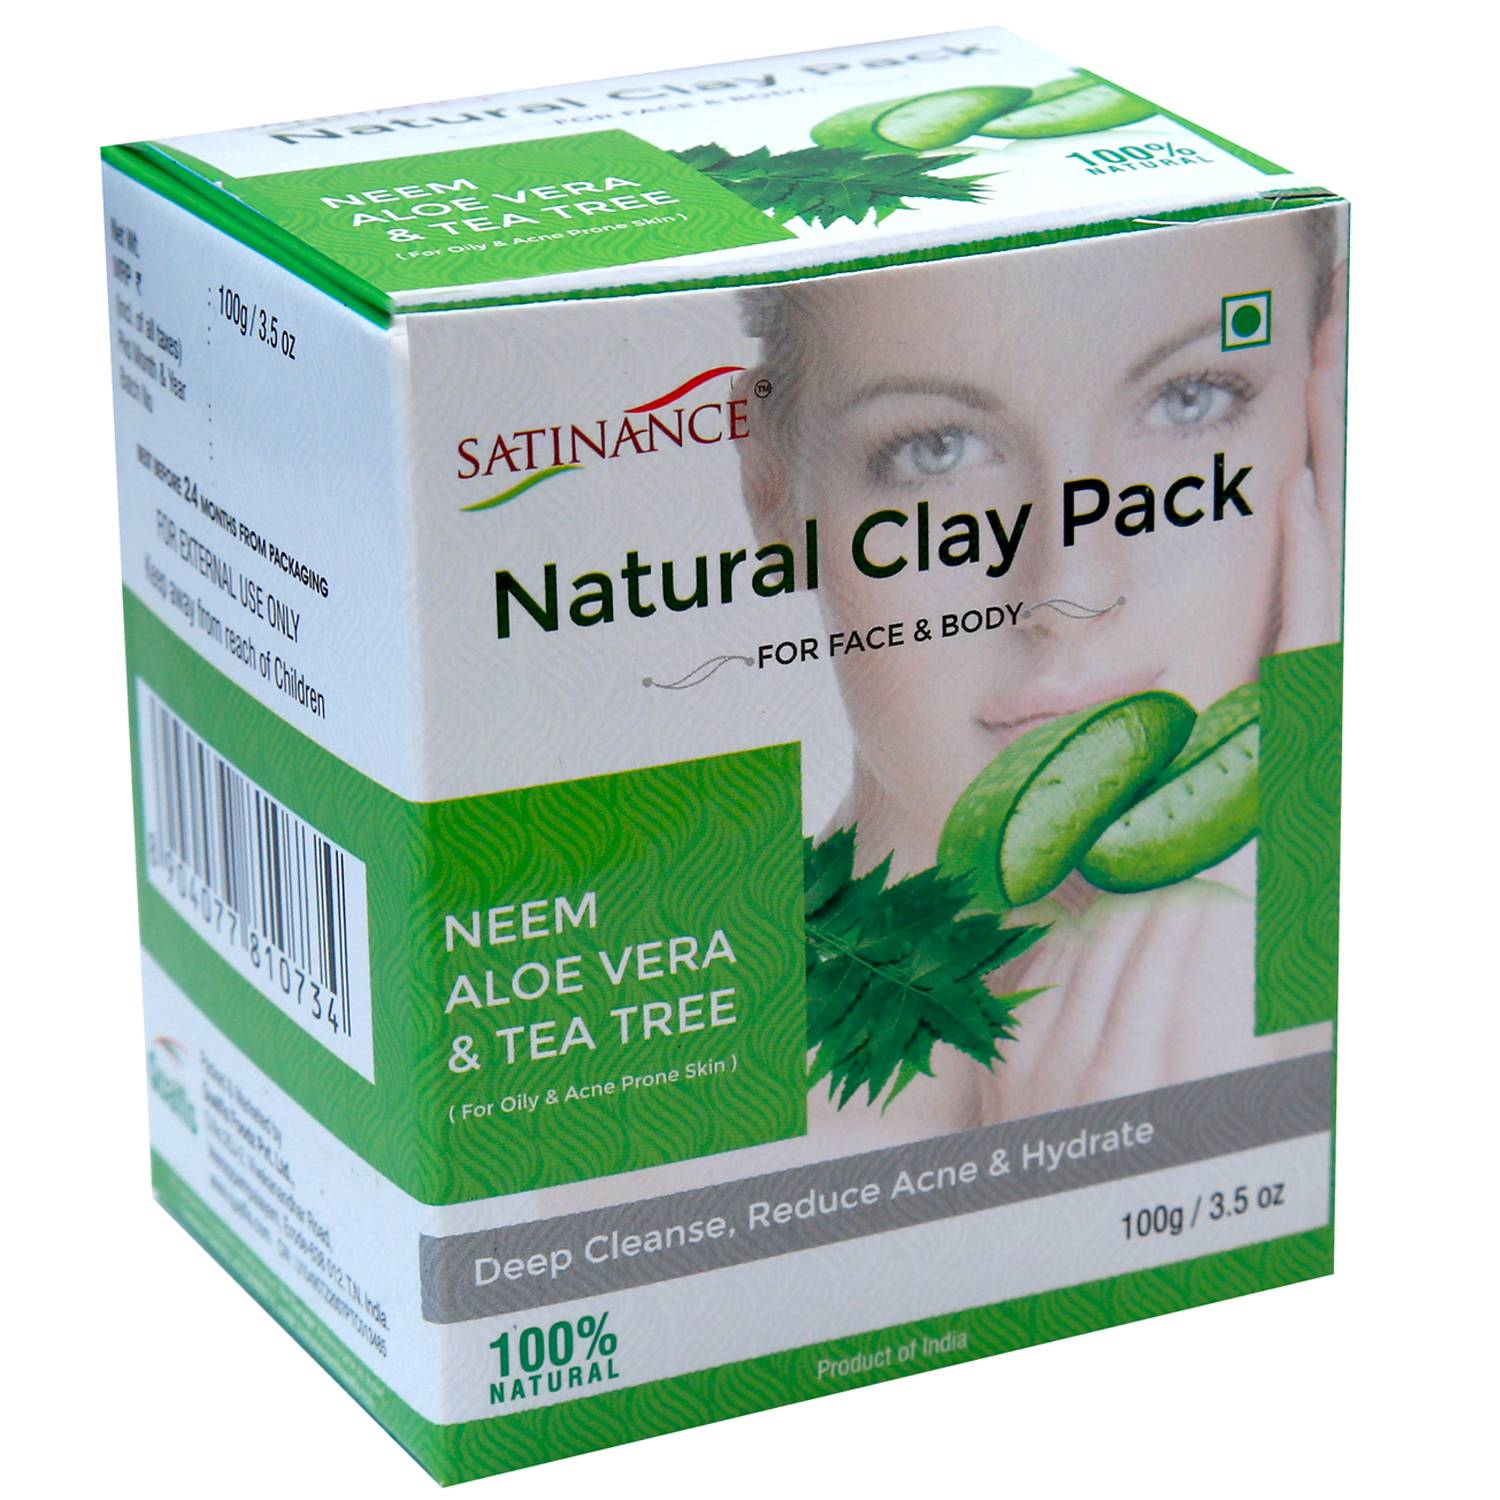 Natural Clay Pack – Neem, Ale Vera & Tea Tree – 100g (Deep Cleanse, Reduce acne & Hydrate)